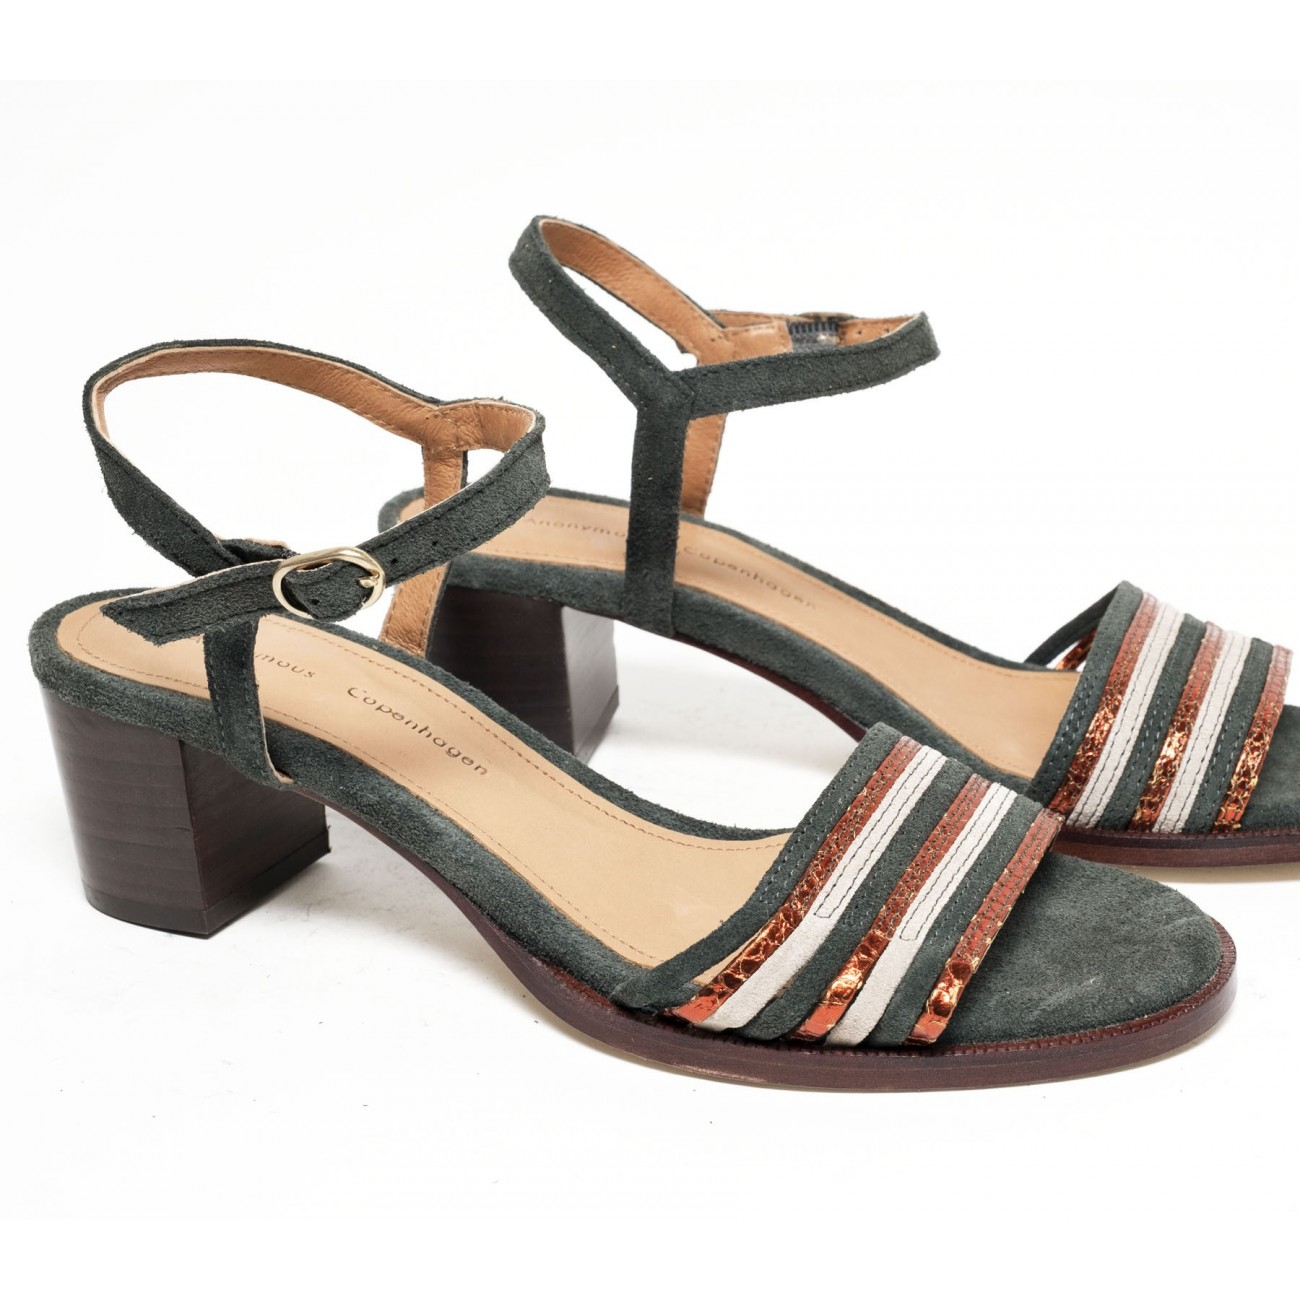 Dorthy Suede Forrest multi - Size 38